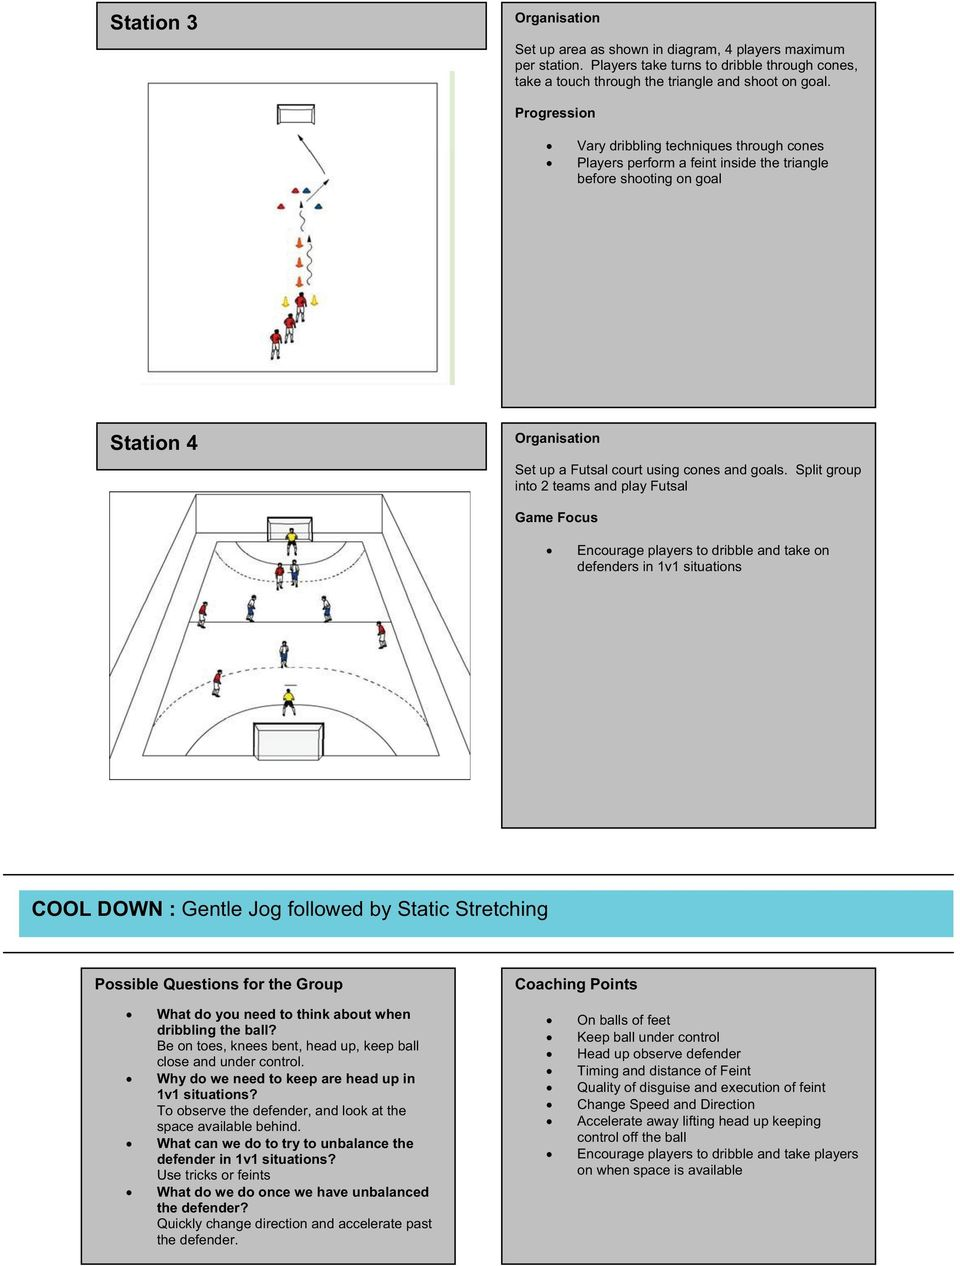 Split group into 2 teams and play Futsal Game Focus Encourage players to dribble and take on defenders in 1v1 situations COOL DOWN : Gentle Jog followed by Static Stretching Possible Questions for